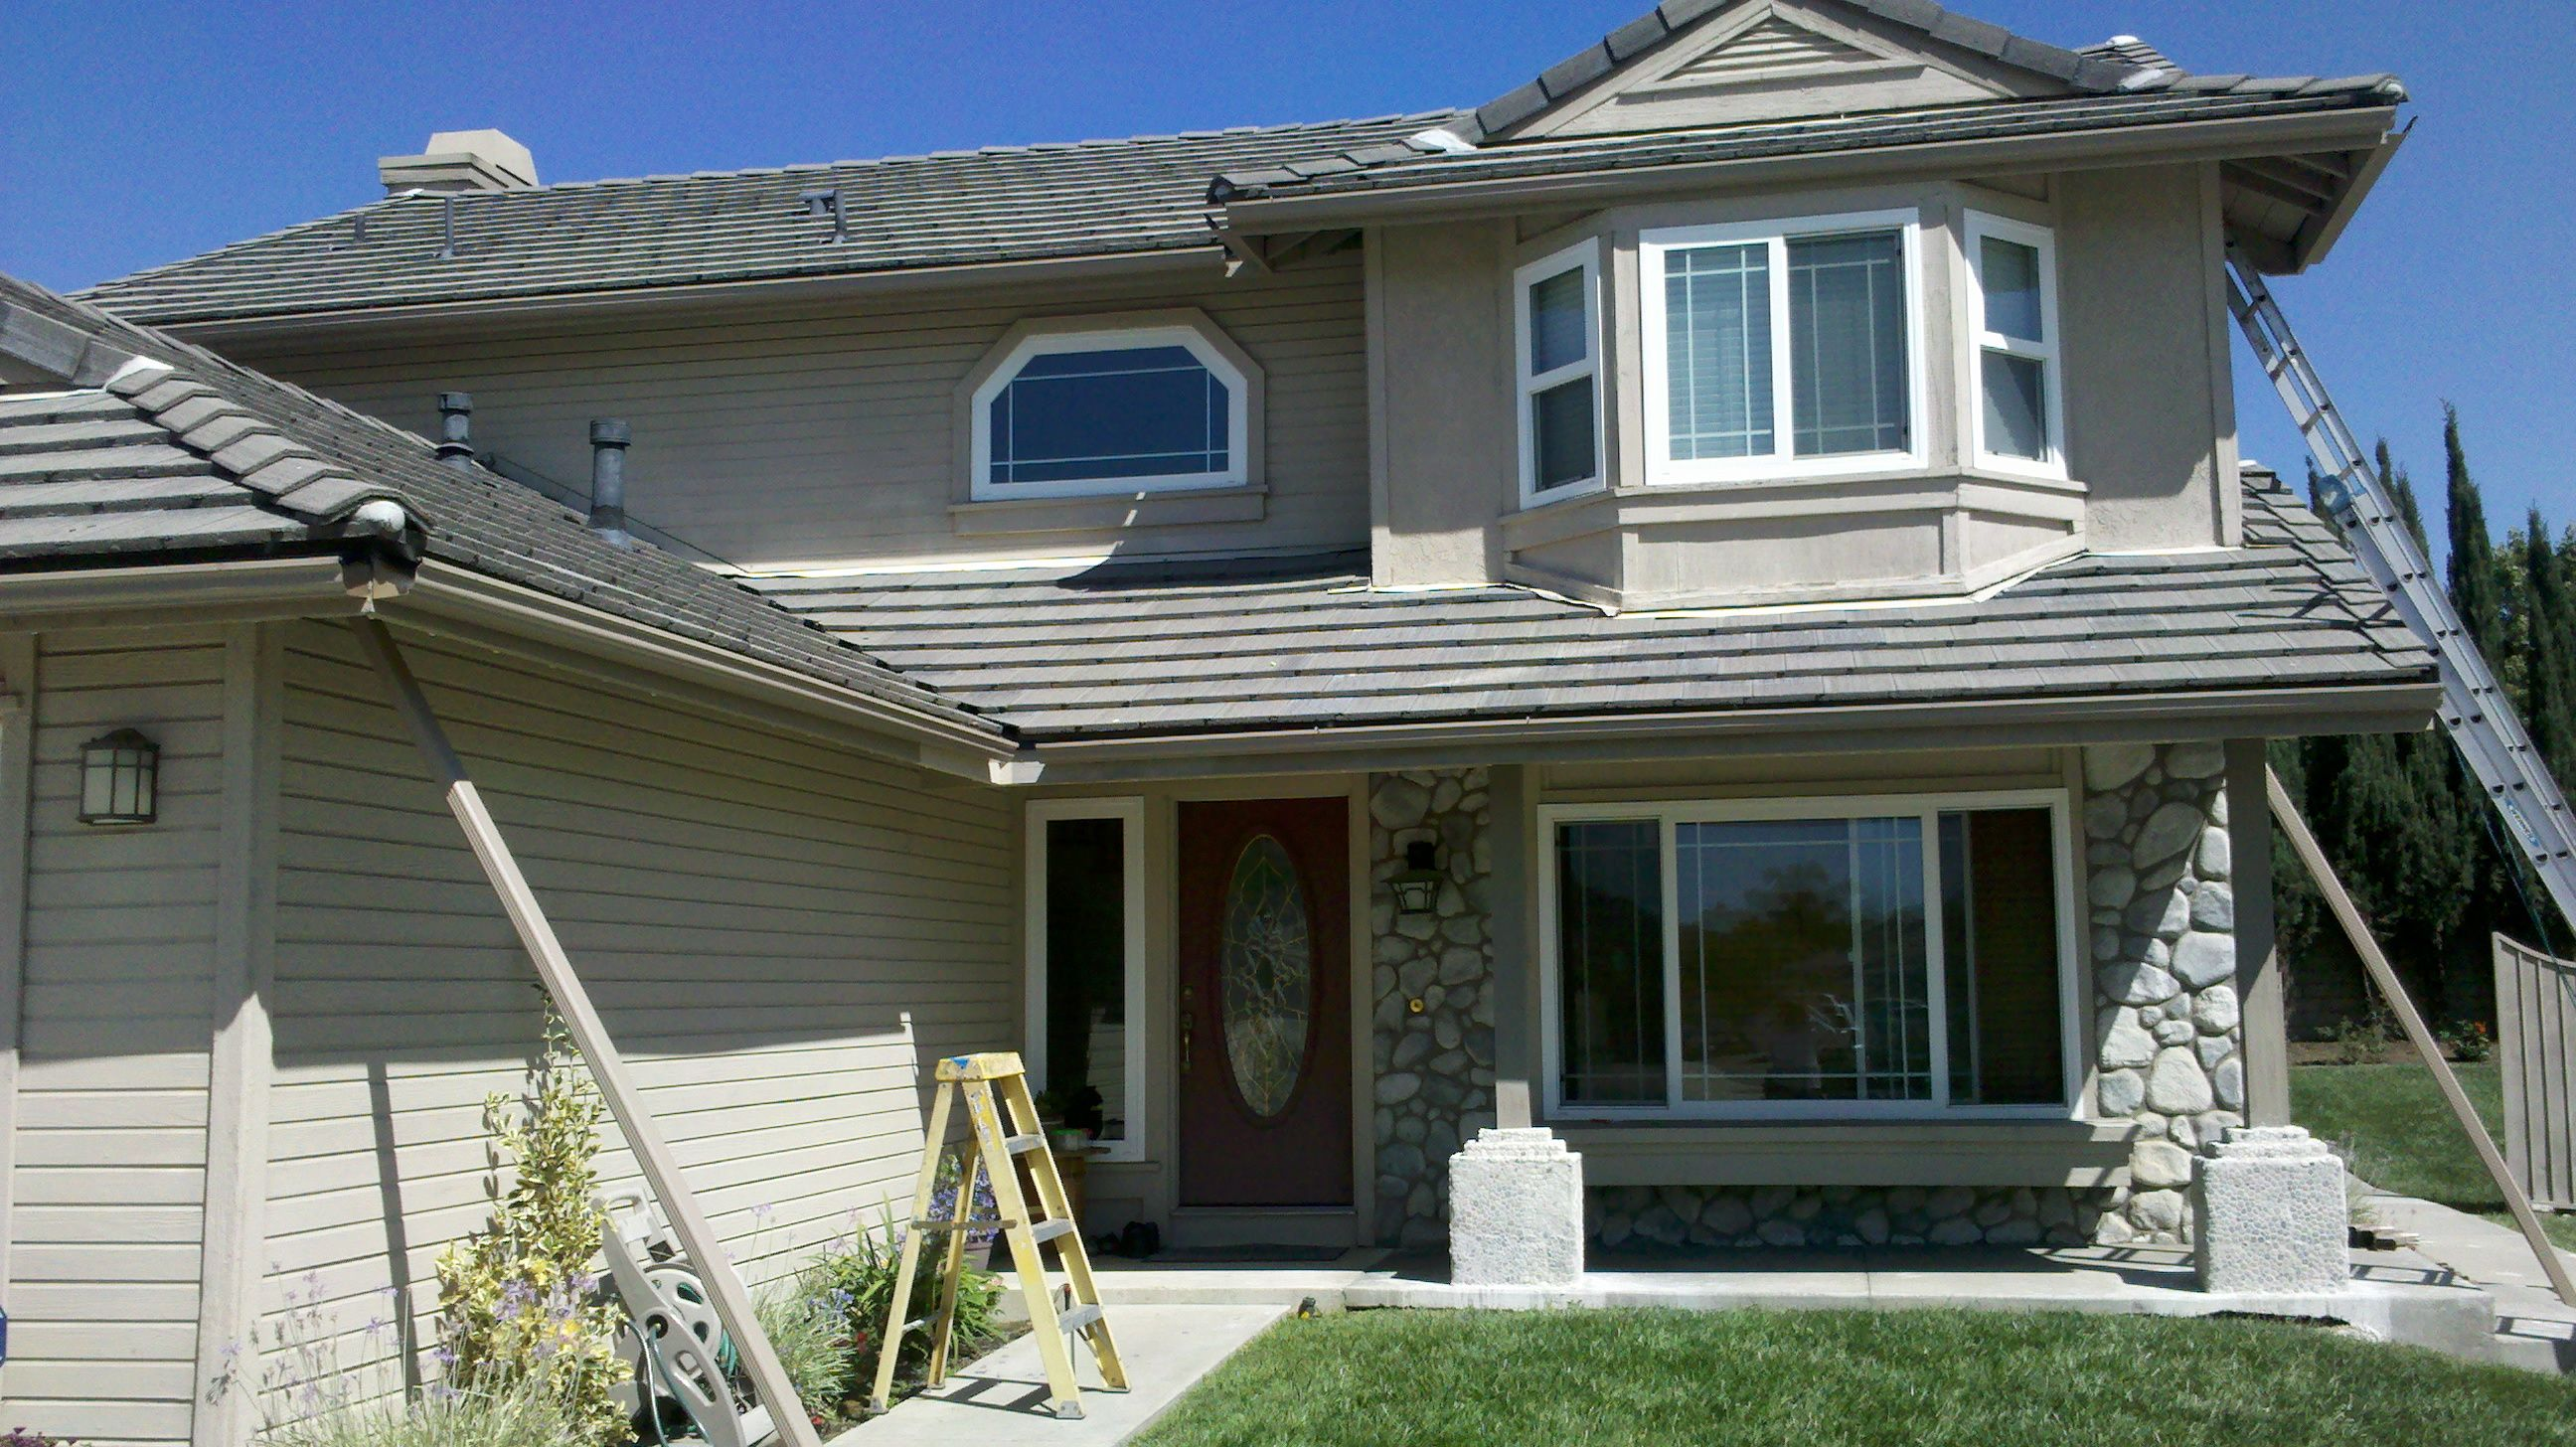 Http Www Manufacturedhomerepairtips Com Gutterrepairoptions Php Has Some Tips For The Diy Homeowner For Caring Homeowner House Gutters How To Install Gutters